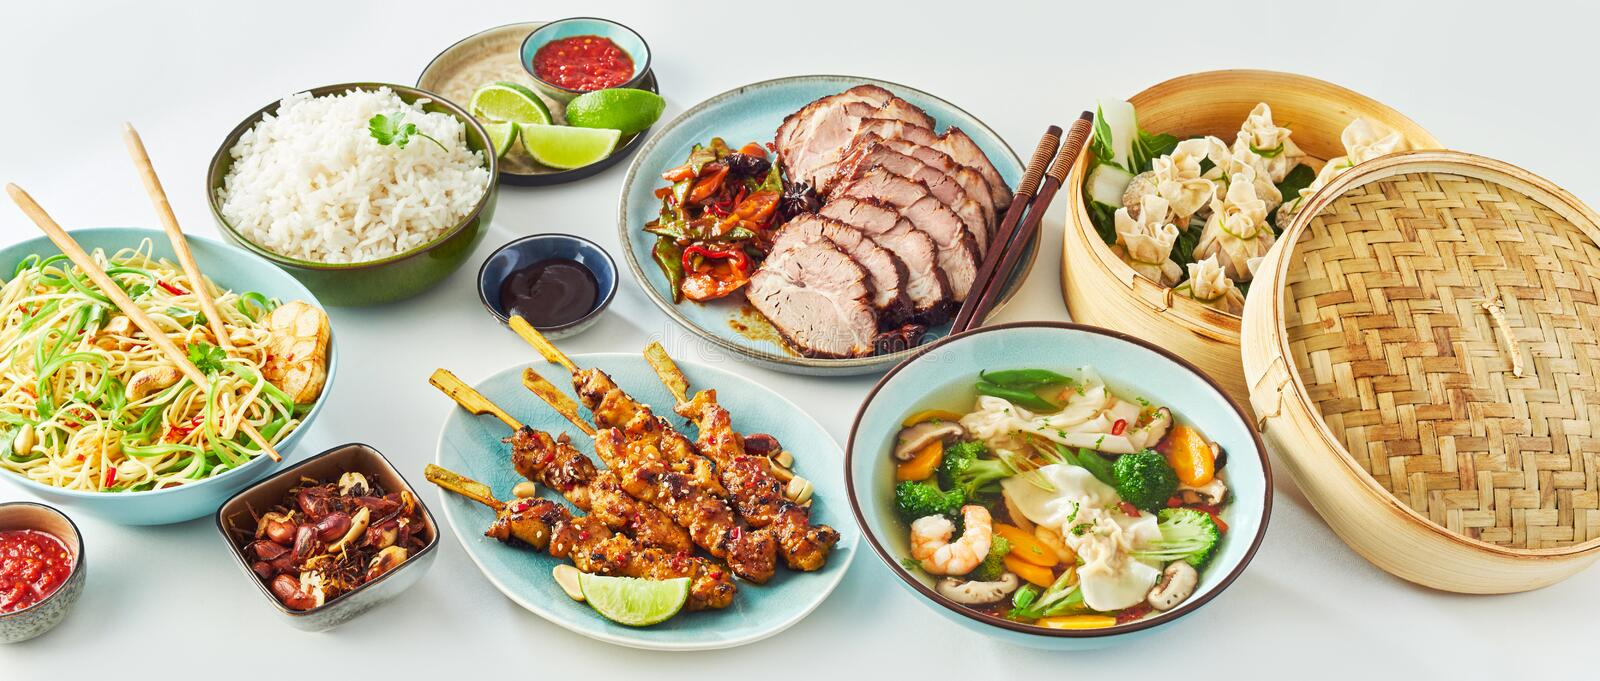 Buffet of Assorted of Chinese Food Dishes stock photo